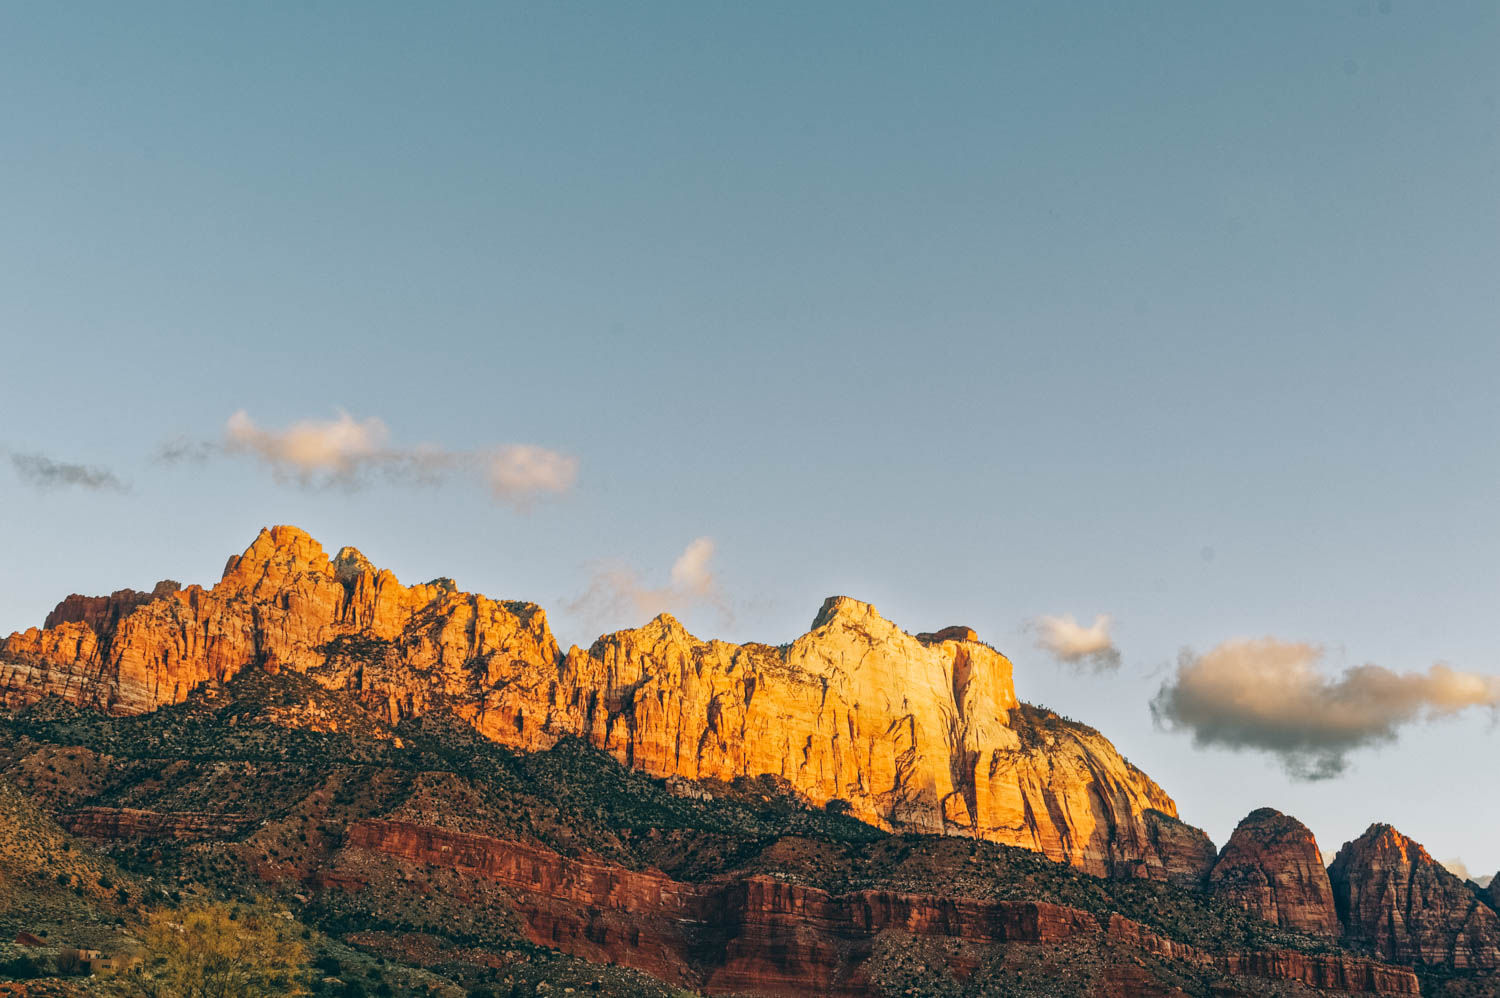 Sunrise over Zion